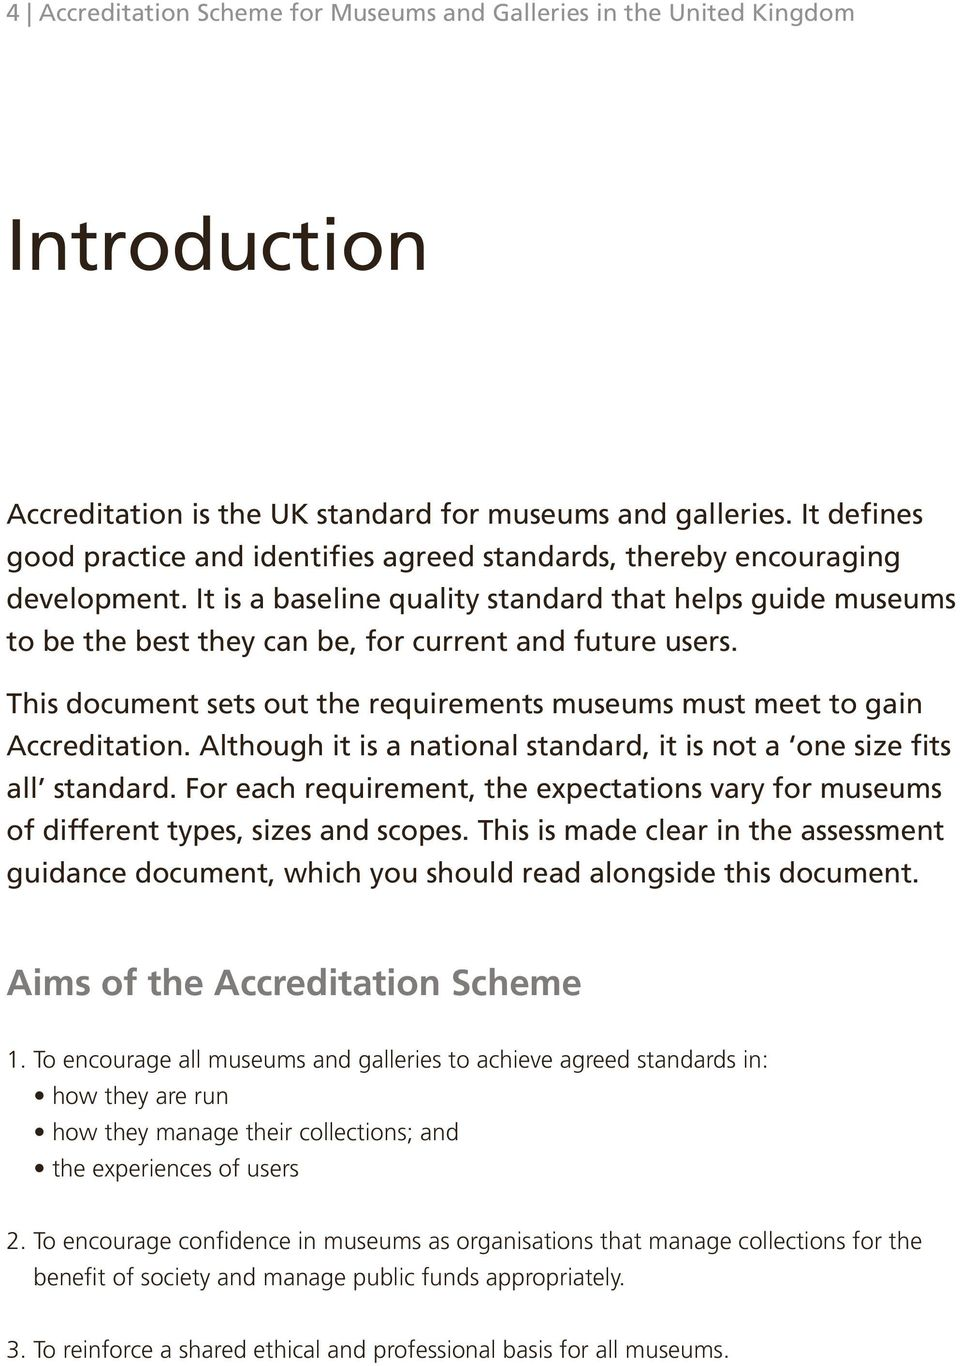 It is a baseline quality standard that helps guide museums to be the best they can be, for current and future users. This document sets out the requirements museums must meet to gain Accreditation.